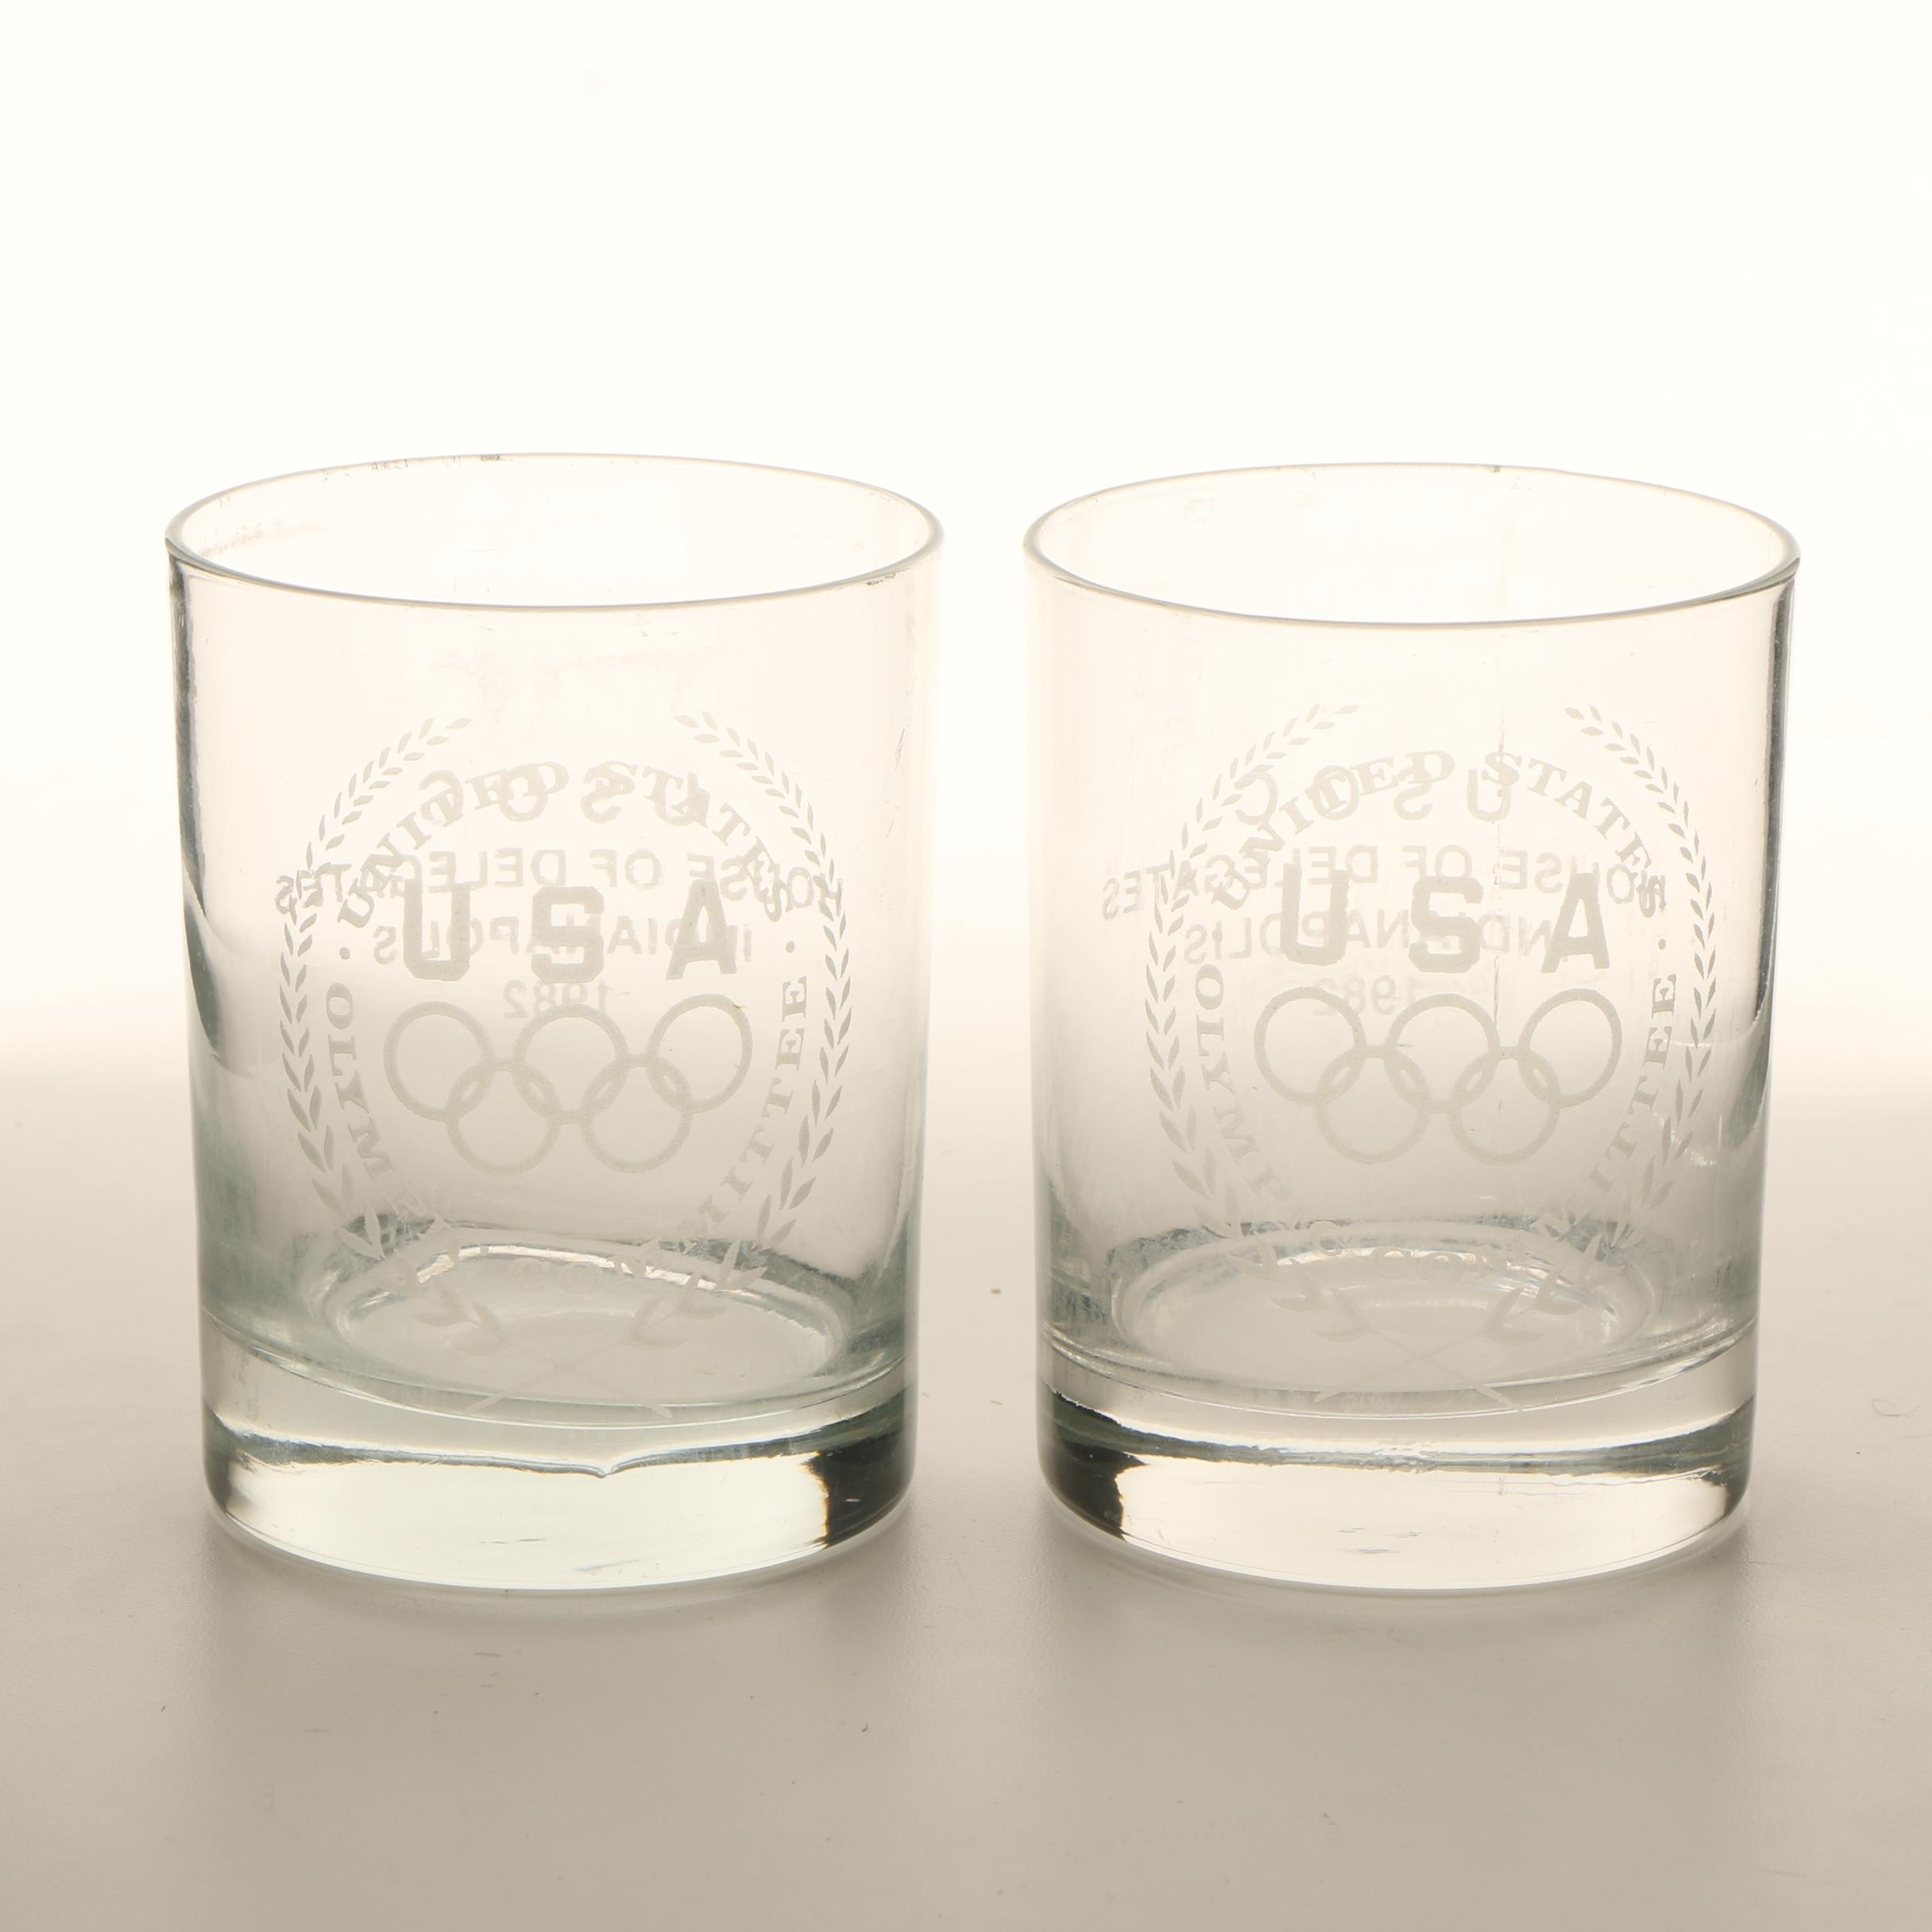 Pair of 1982 United States Olympic Committee Glass Tumblers